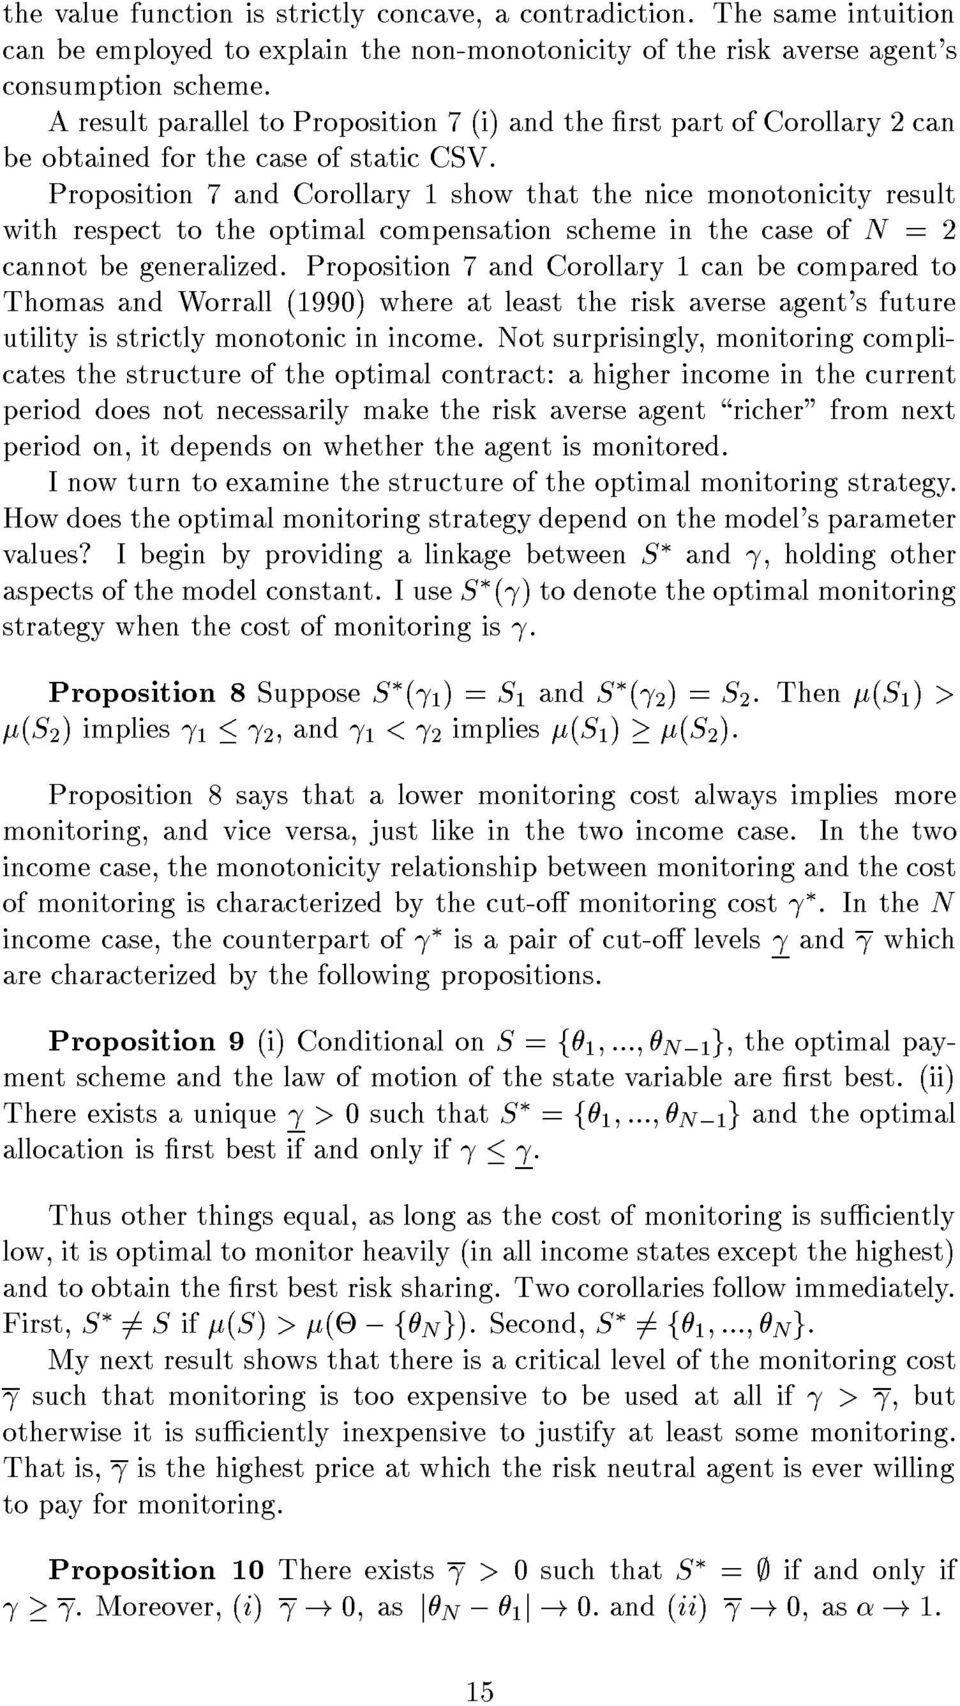 Proposition 7 and Corollary show that the nice monotonicity result with respect to the optimal compensation scheme in the case of N =2 cannot be generalized.